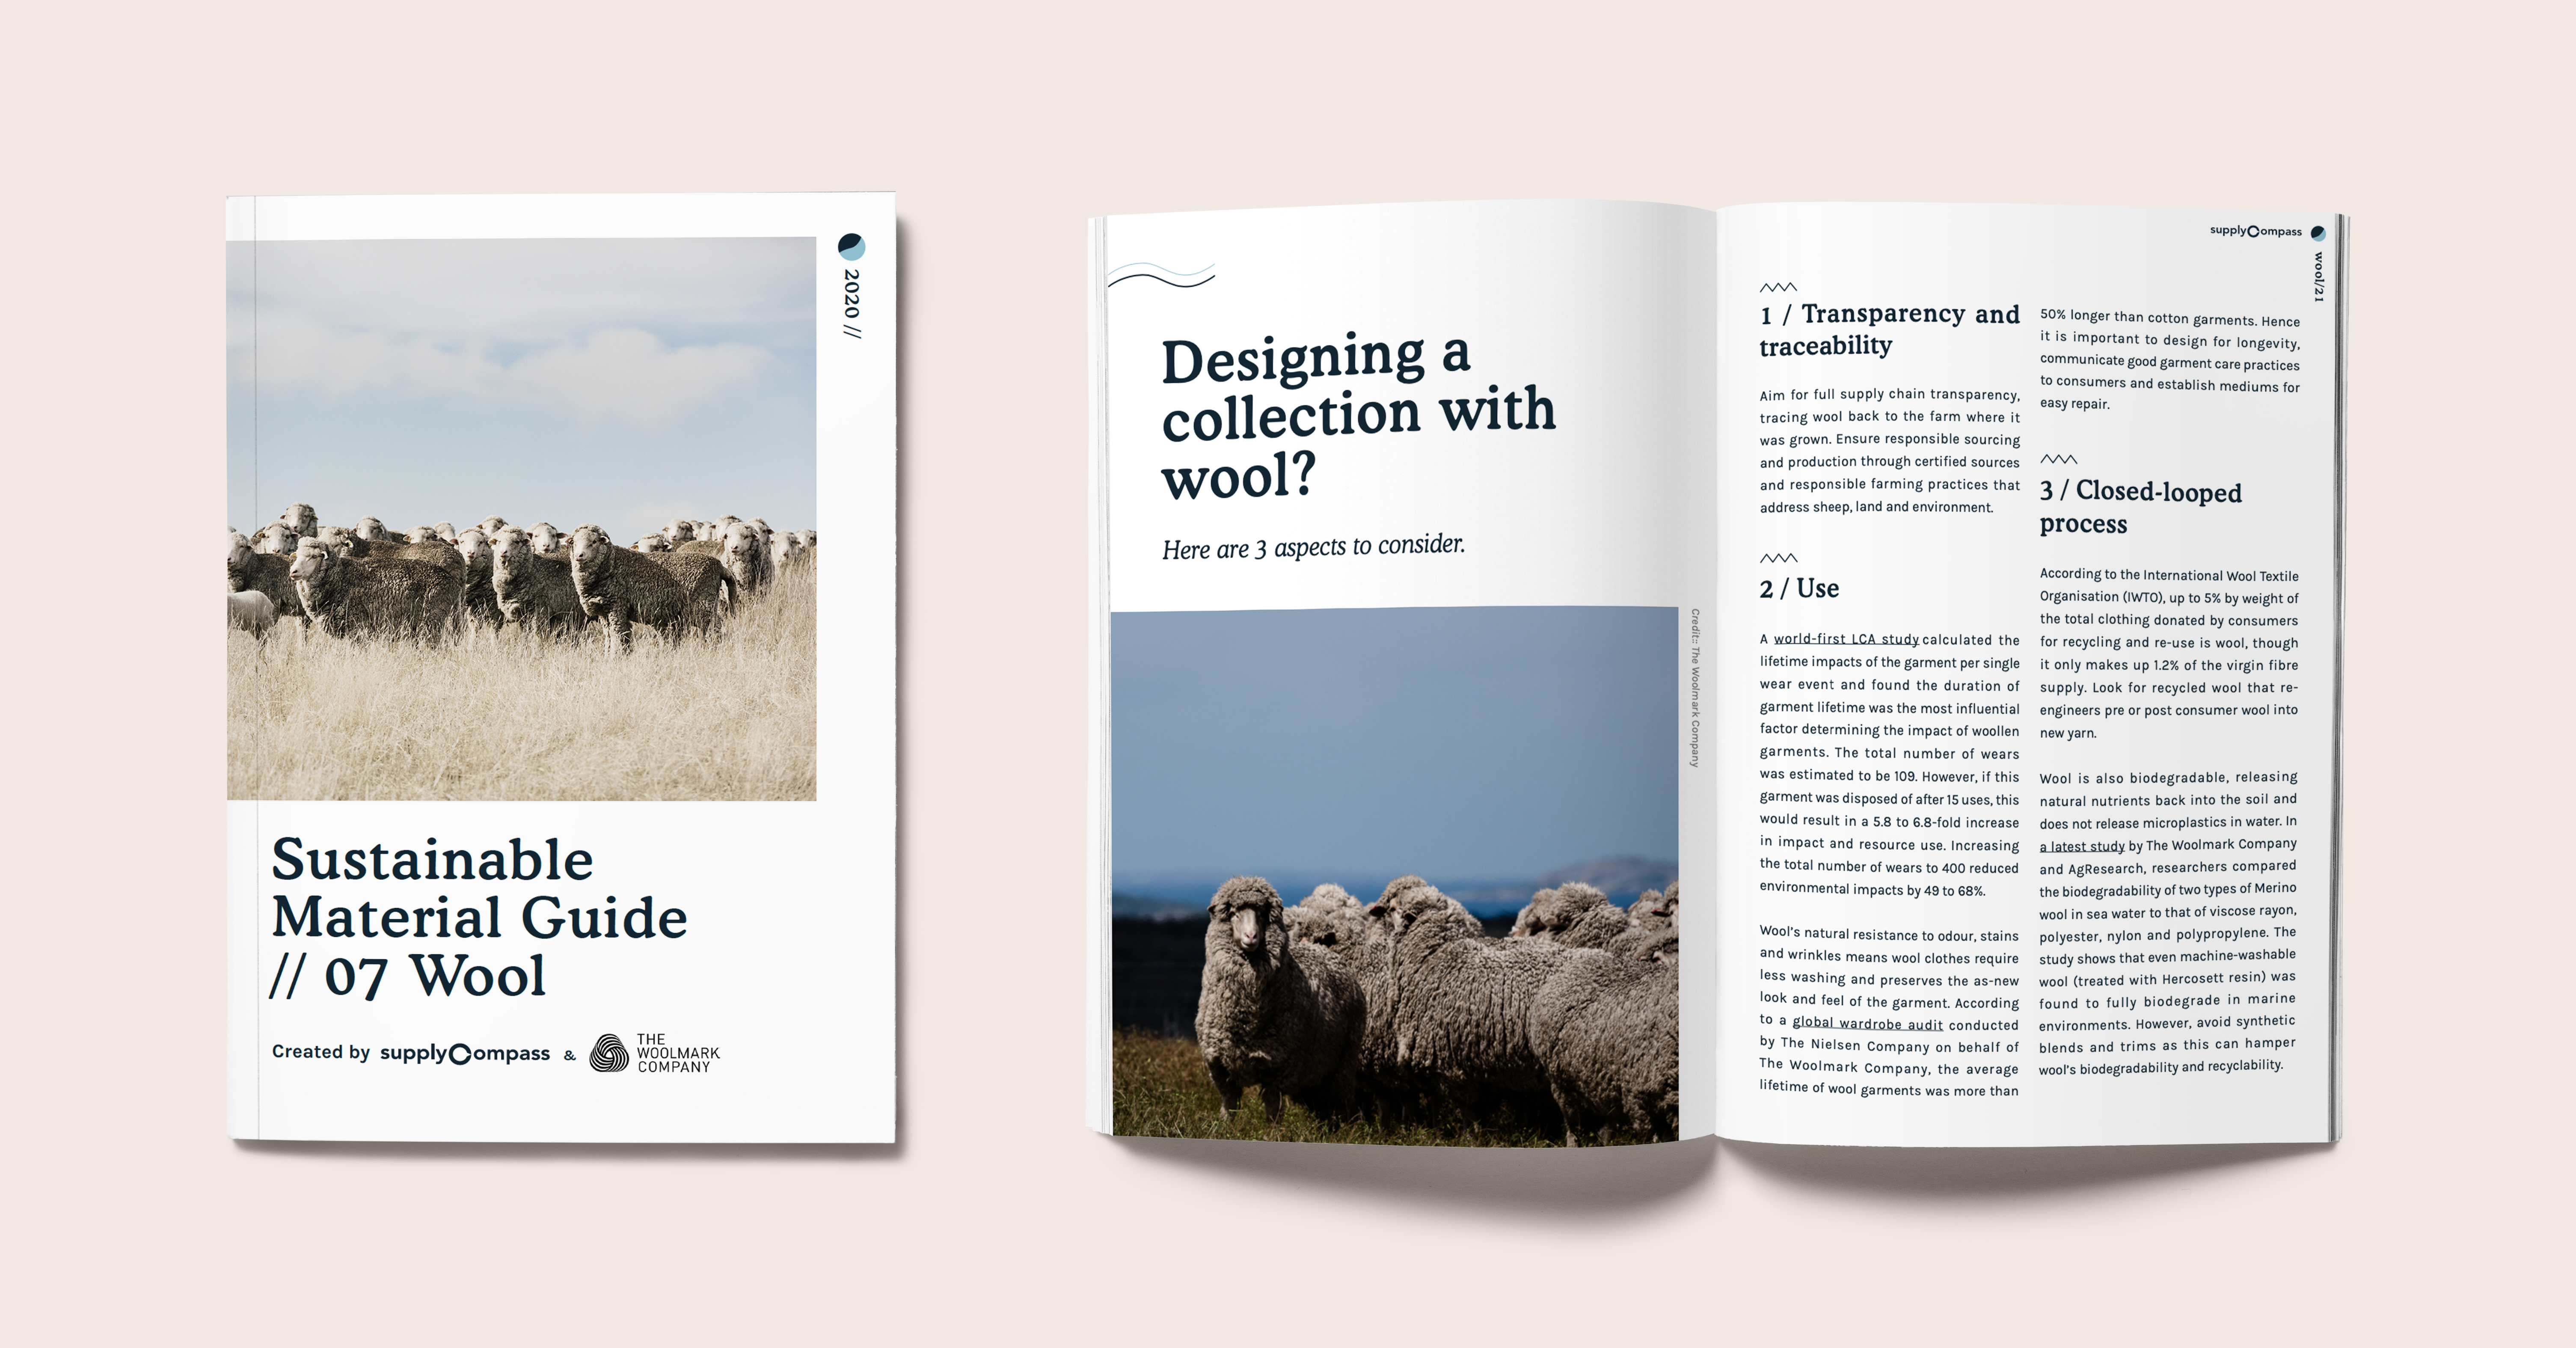 Sustainable Materials: Wool Guide by SupplyCompass and The Woolmark Company